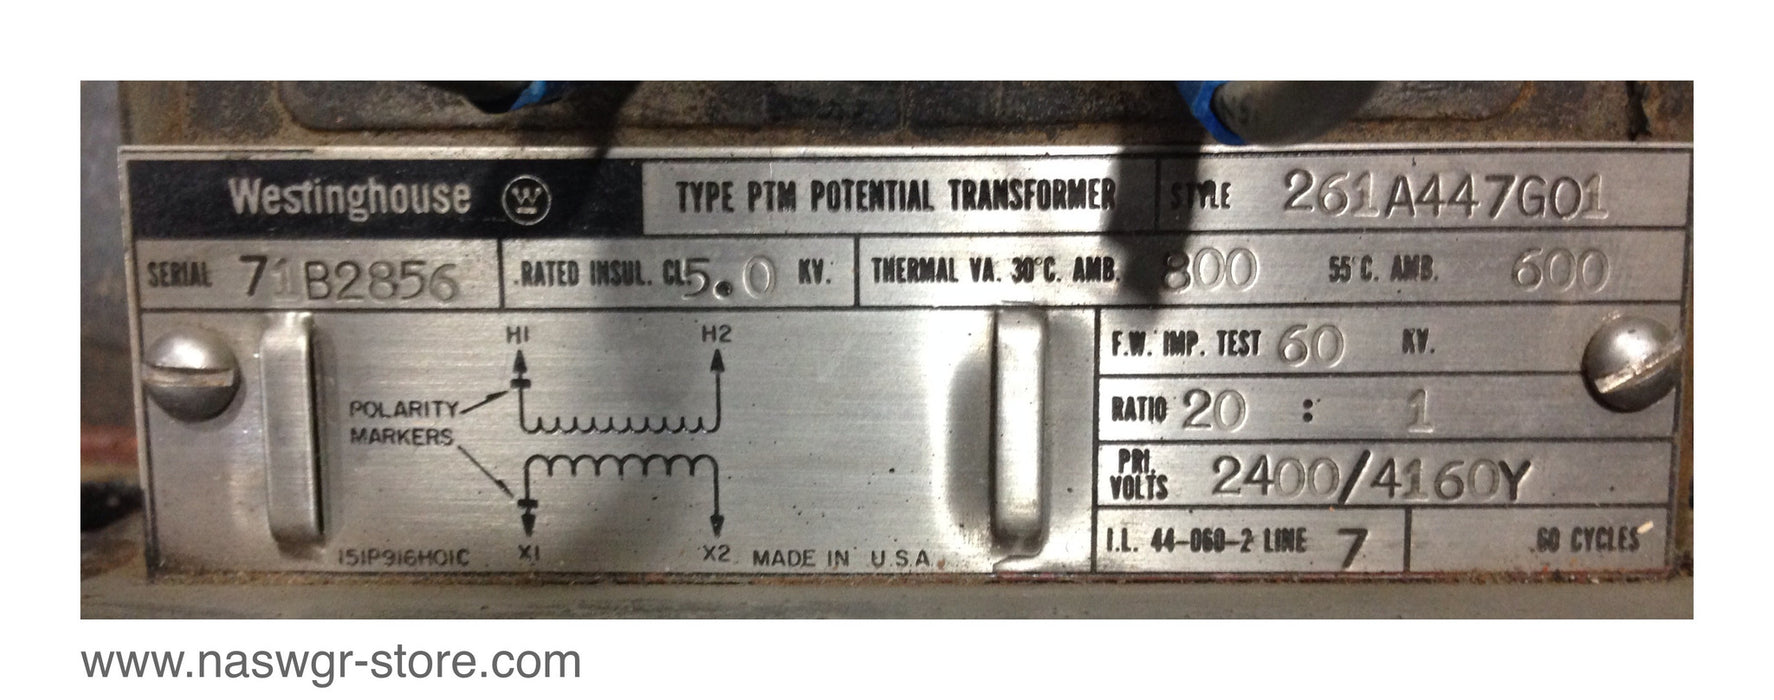 261A447G01 , Westinghouse 261A447G01 Potential Transformer , Ratio: 20:1 , PRIM. Volts: 2400/4160Y , PN: 261A447G01